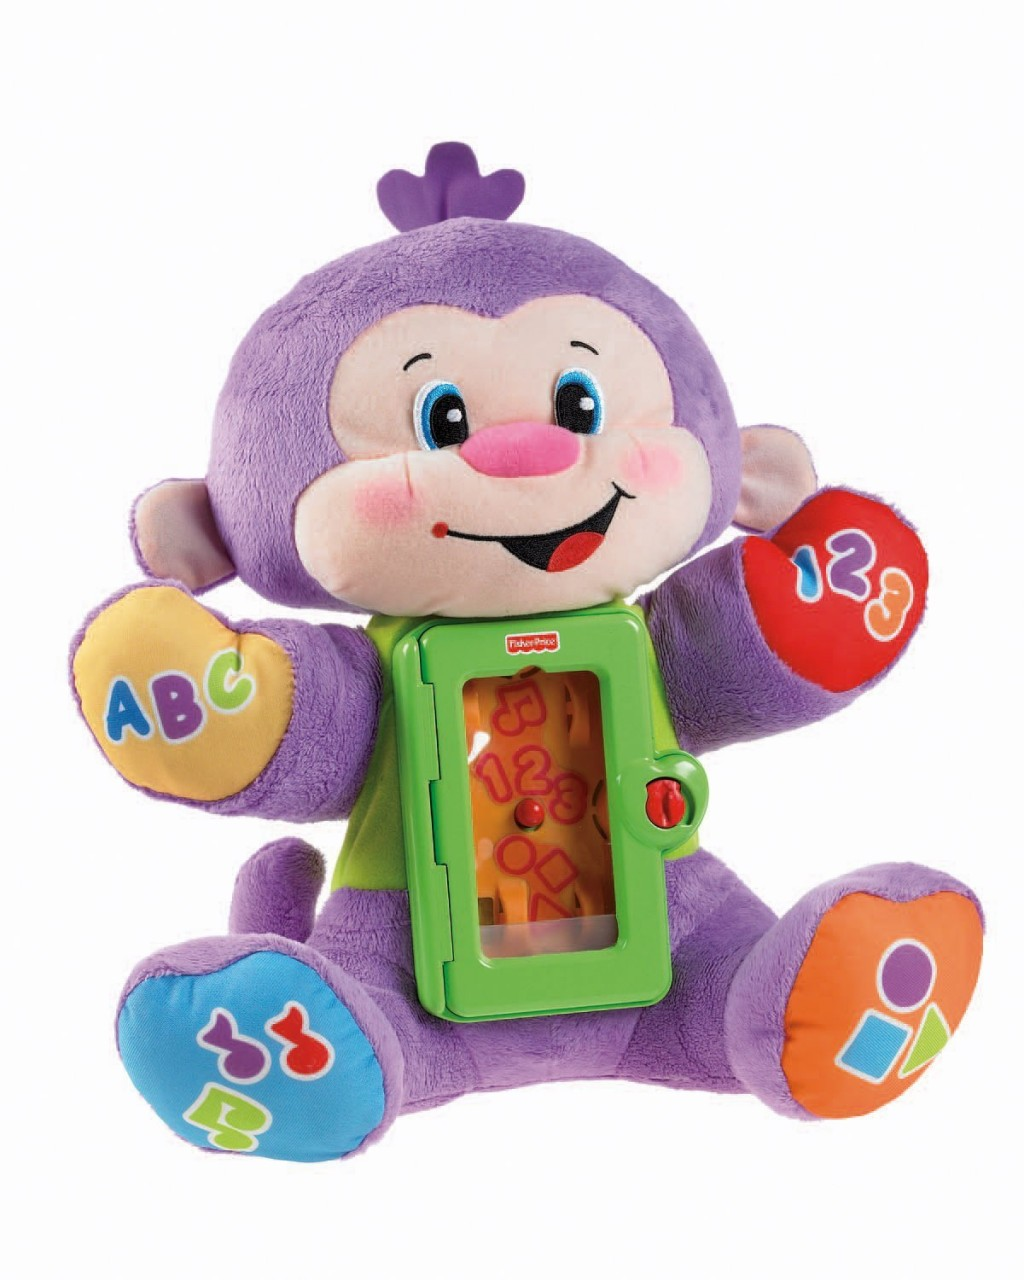 FISHER PRICE SUPORTE PARA IPHONE E ITOUCH